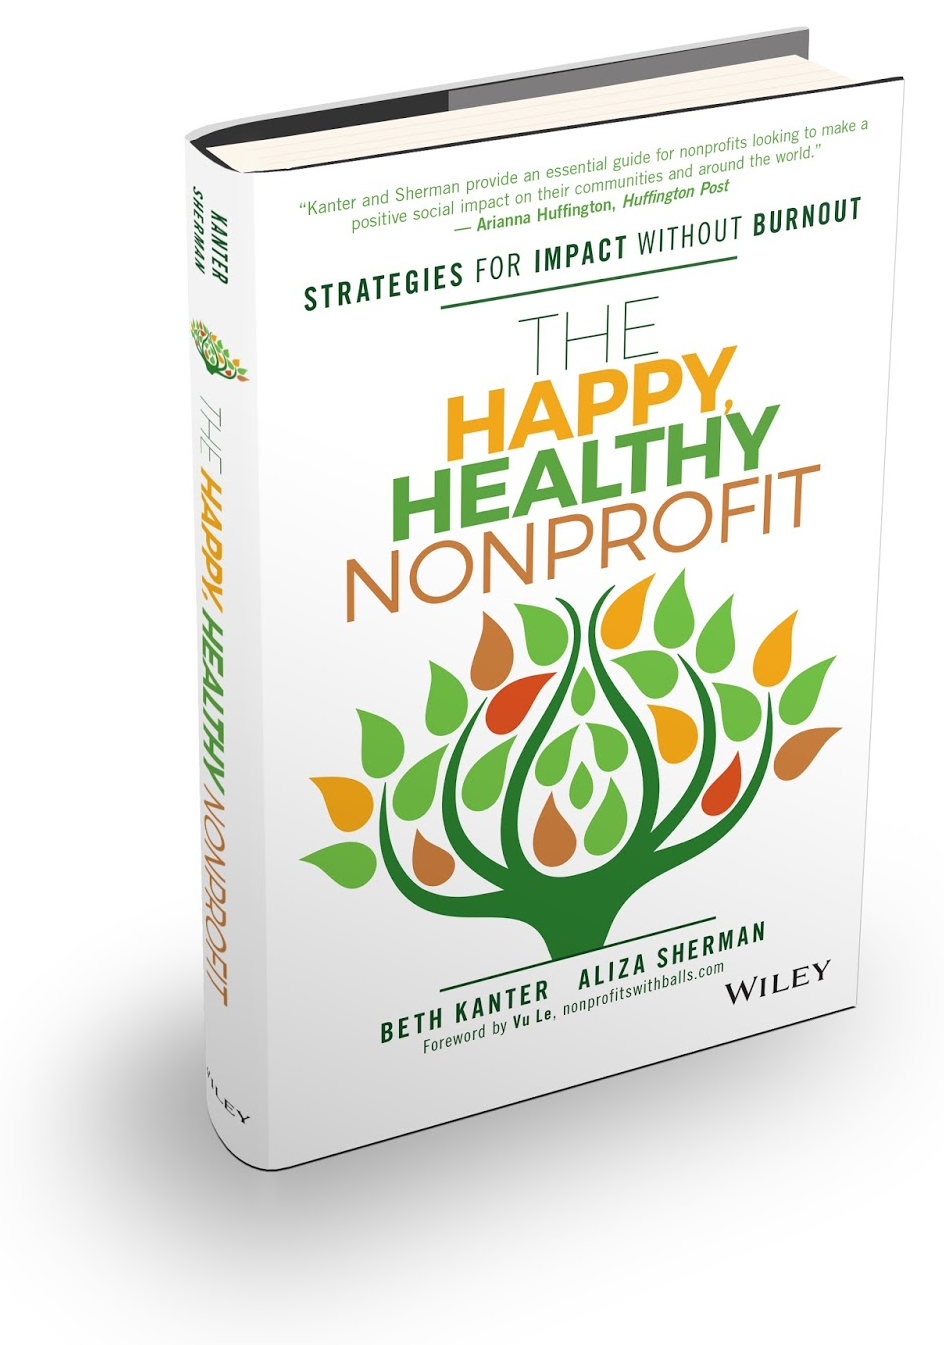 Happy Nonprofit Culture